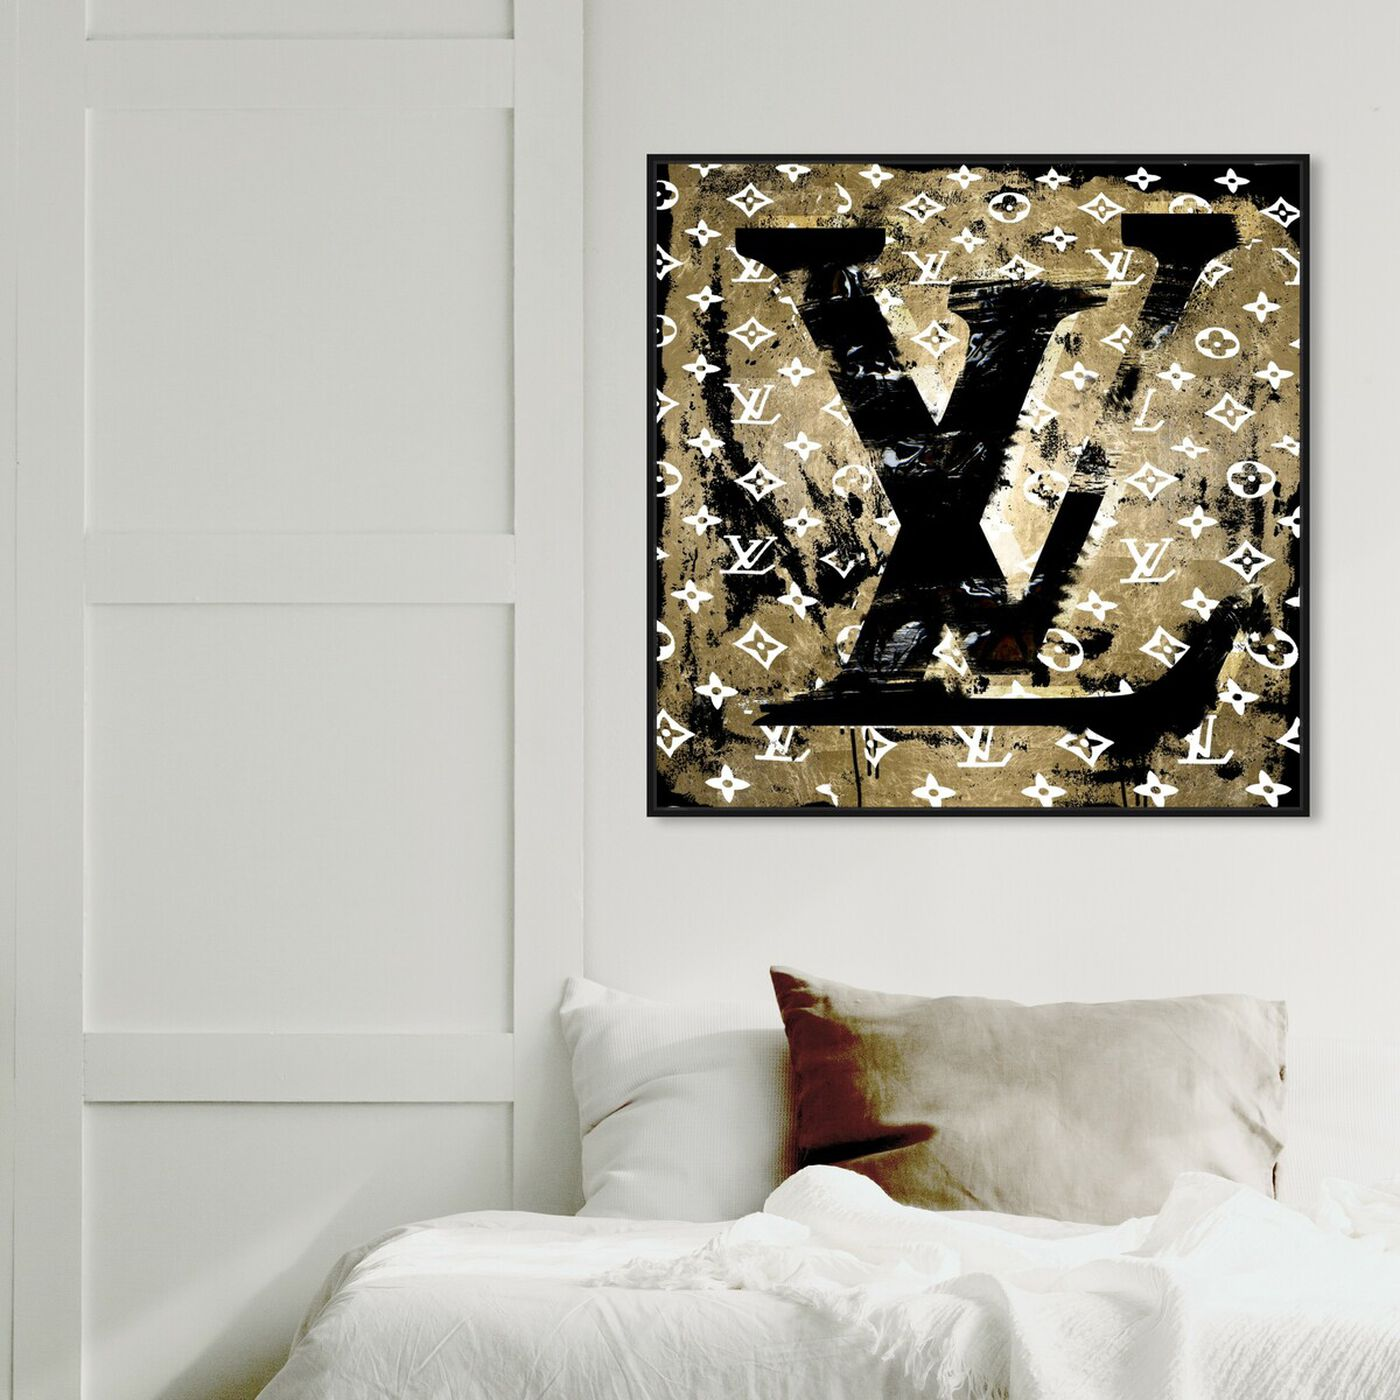 Hanging view of Gold Tag featuring fashion and glam and road signs art.